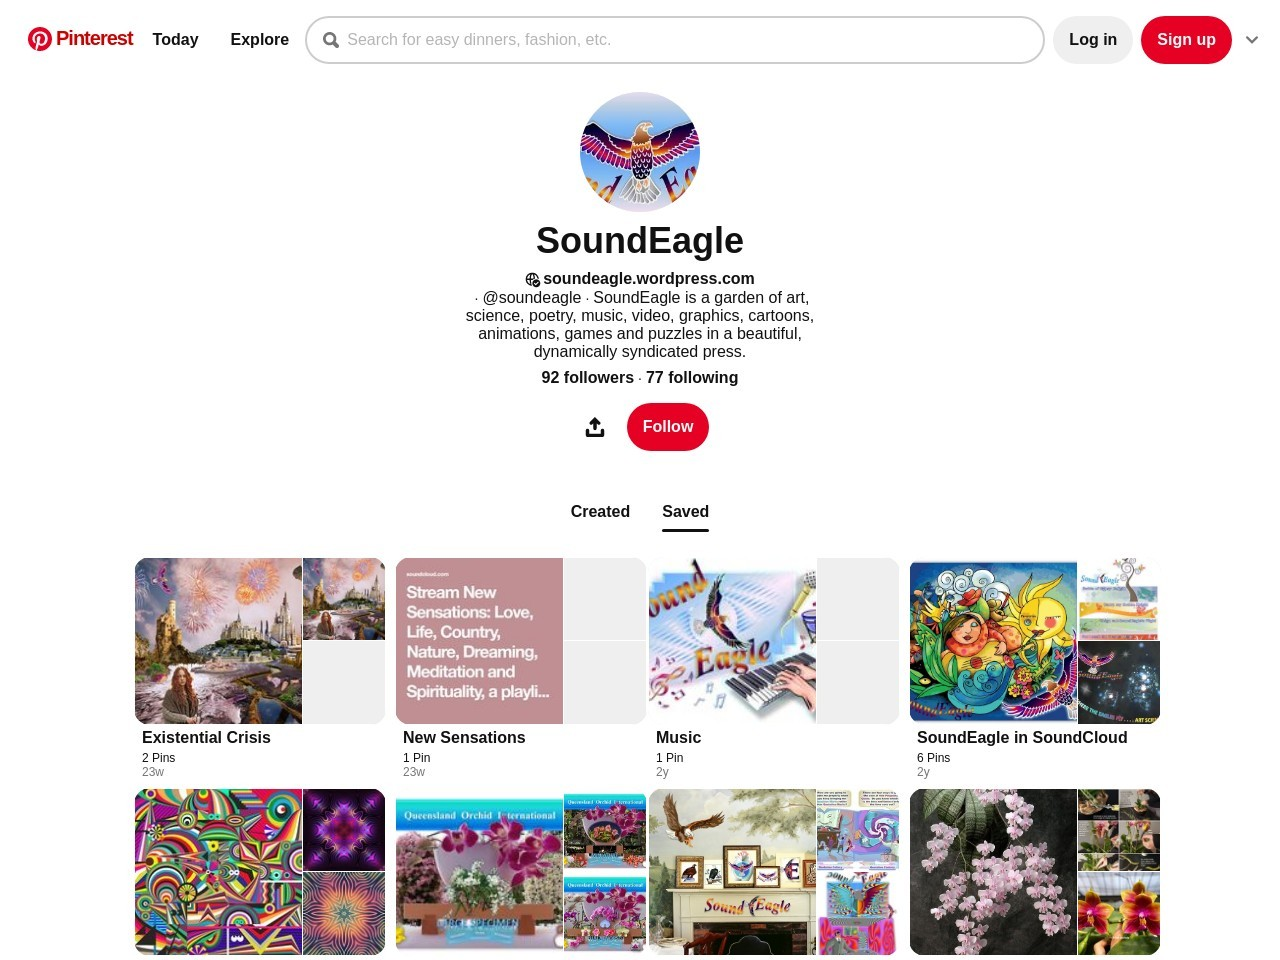 SoundEagle on Pinterest